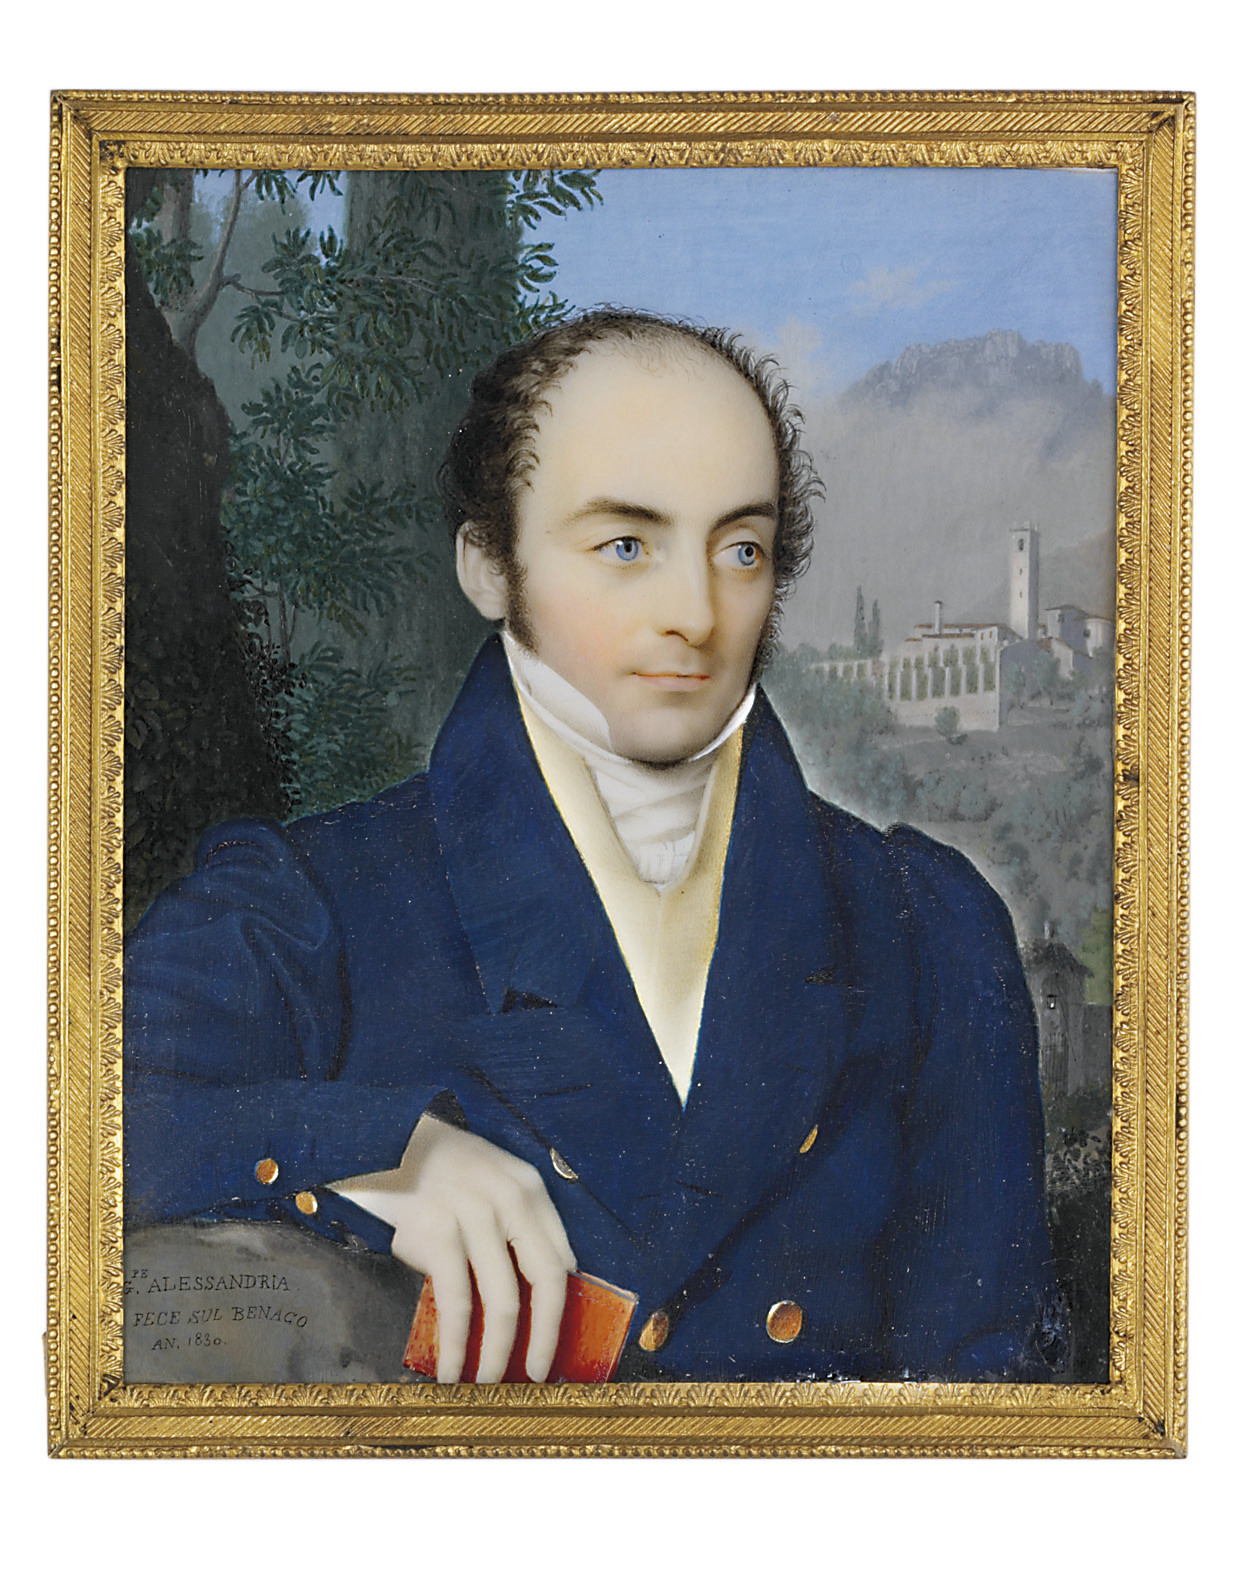 A gentleman, in Prussian blue coat, corn yellow waistcoat, white knotted cravat, holding a red book in his right hand; architectural and foliate mountainous landscape background